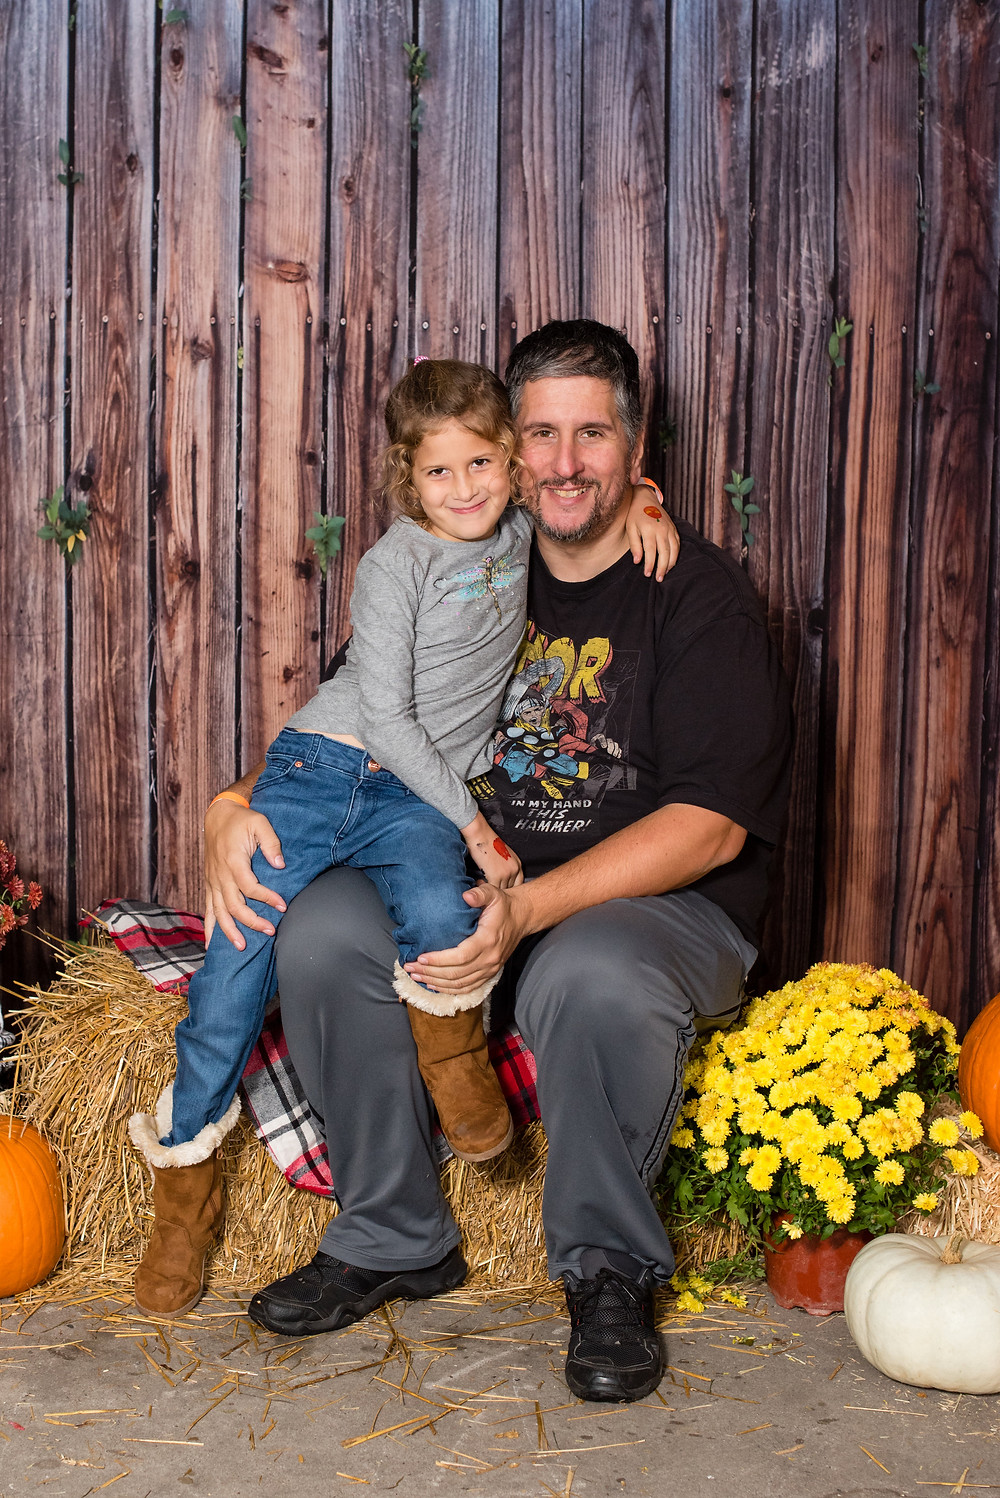 Father and daughter are sitting on hay bales and smiling at the camera.